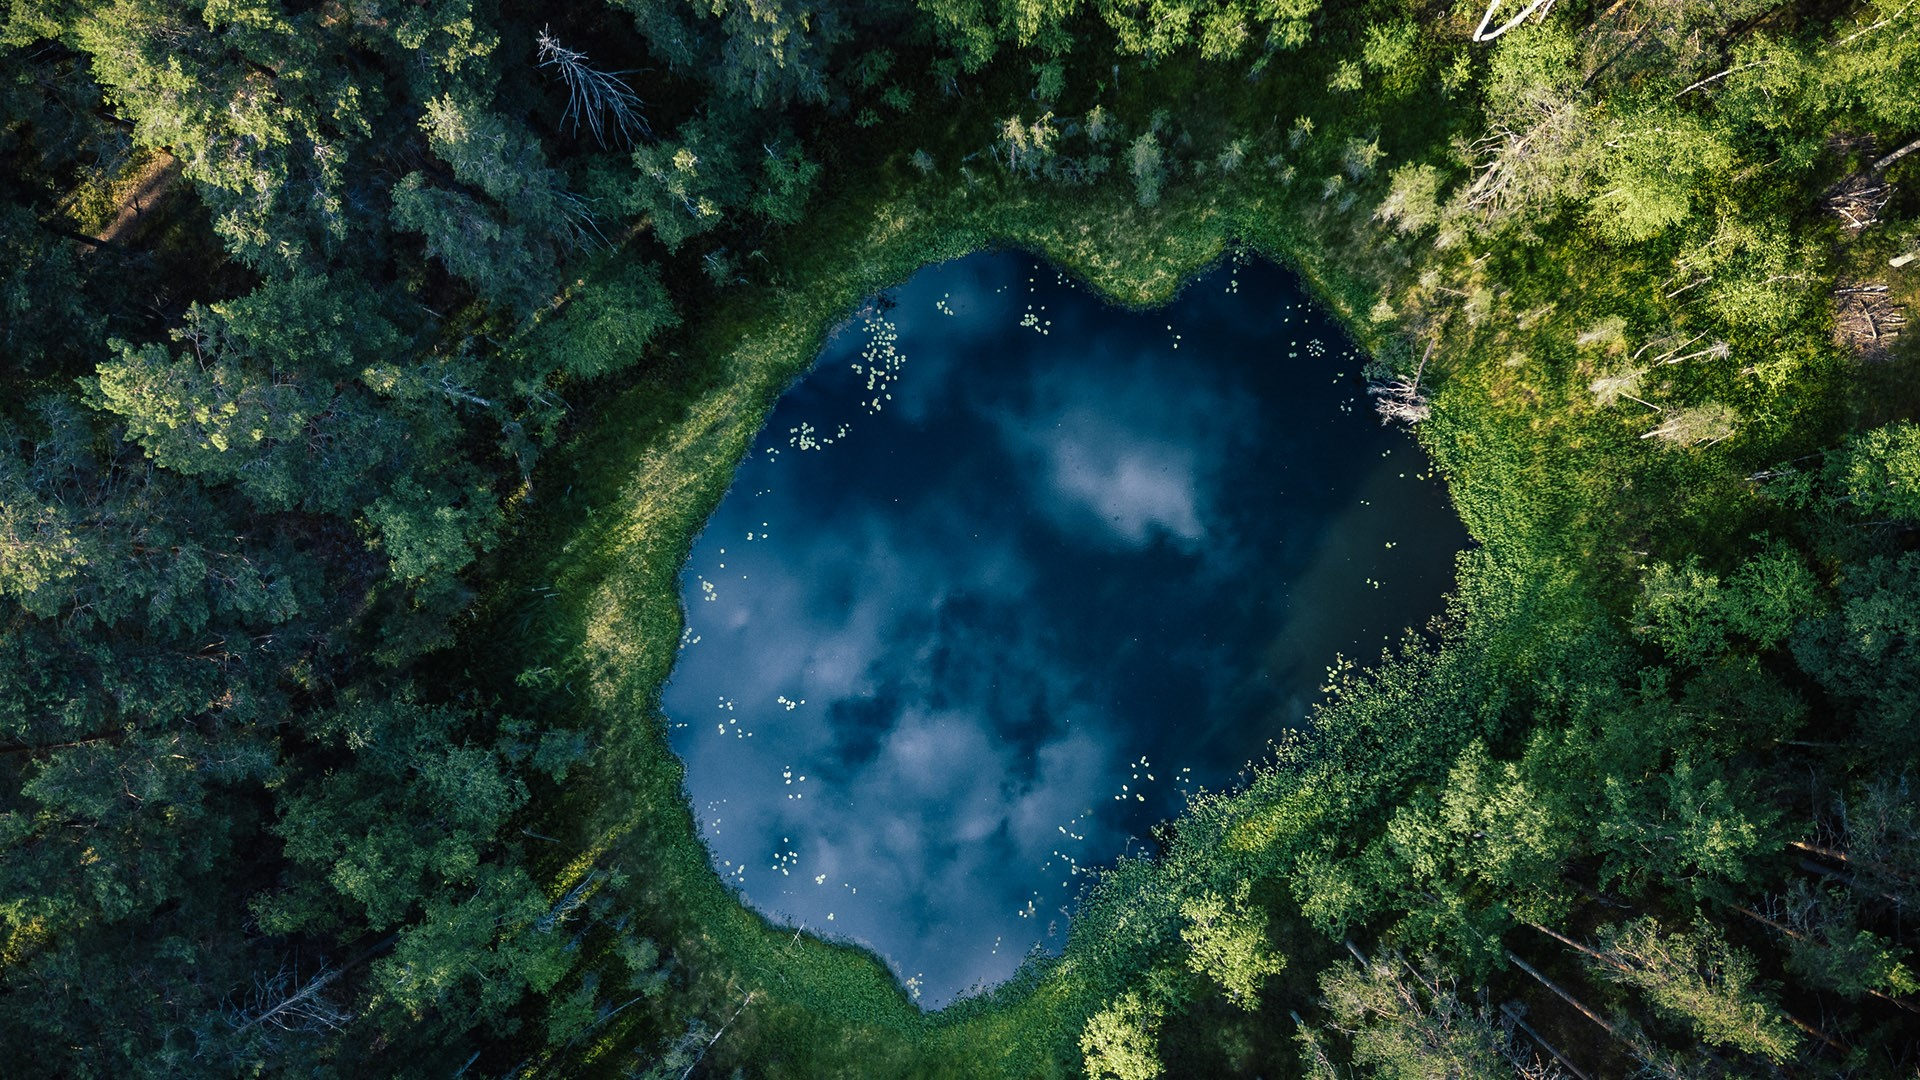 General 1920x1080 nature lake forest grass aerial view Finland reflection clouds landscape water trees top view